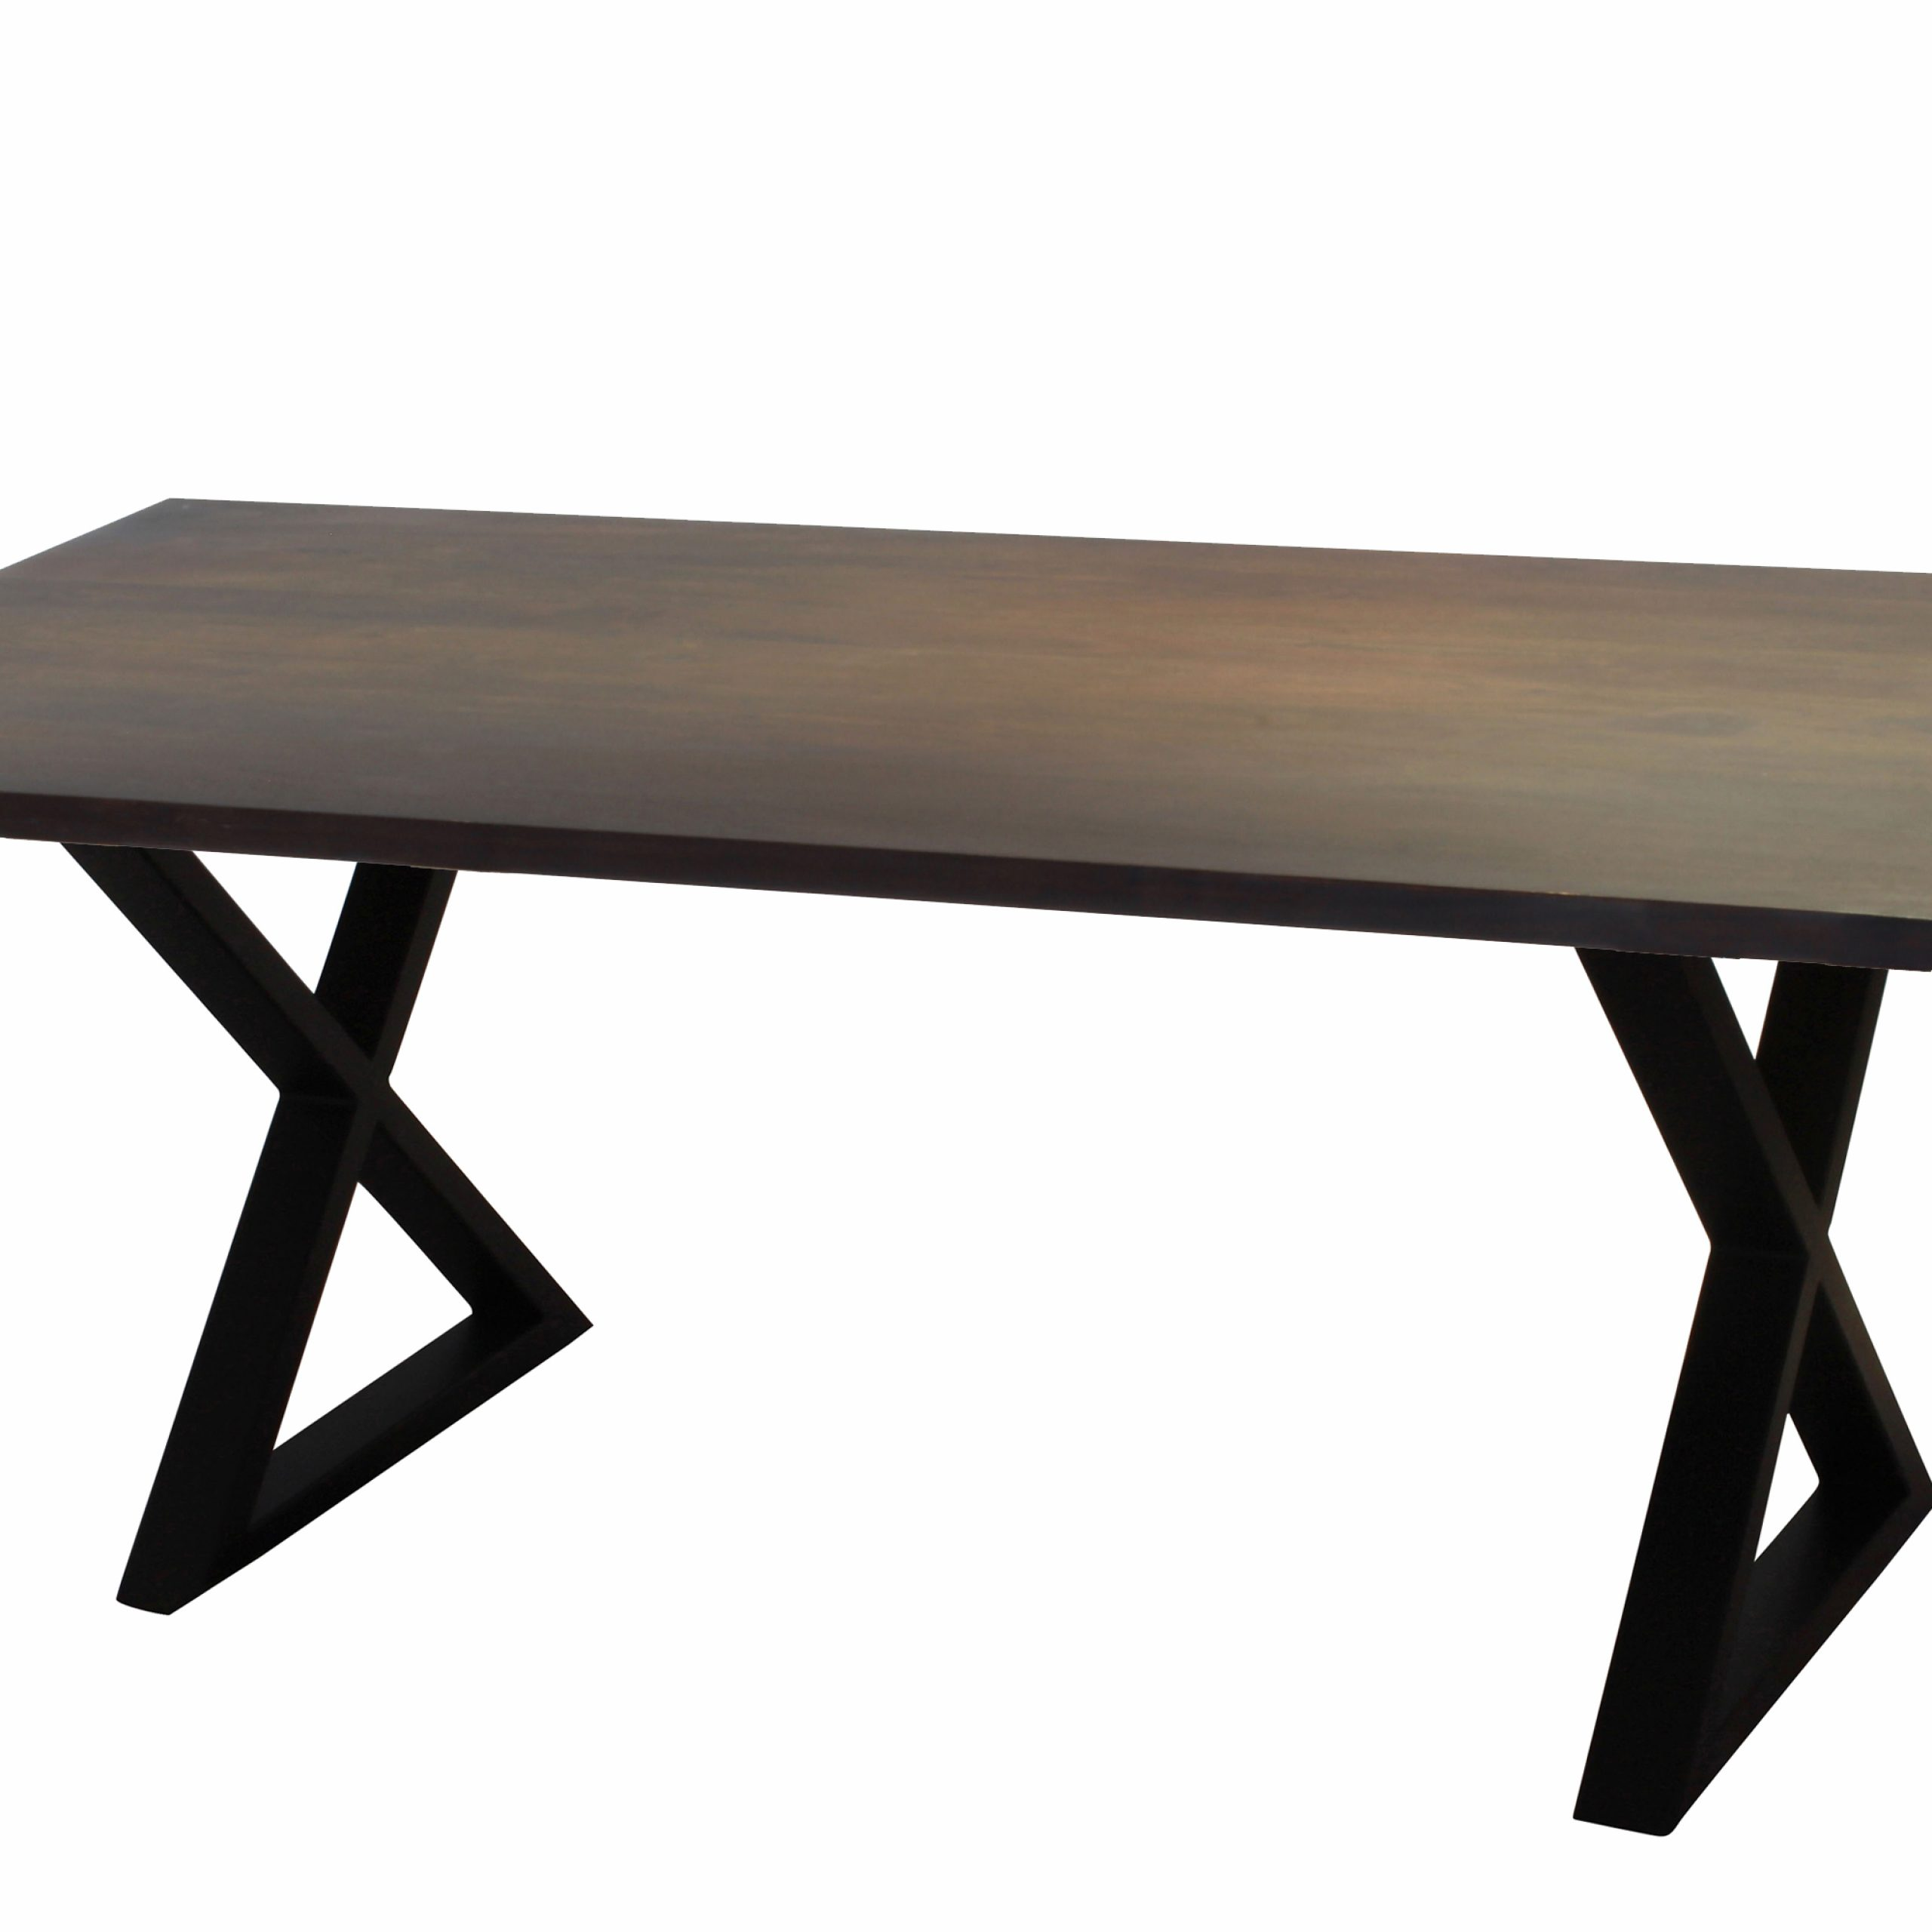 "2019 Acacia Dining Tables With Black X Legs Throughout Corcoran Acacia Live Edge Dining Table With Black X Legs – 72"" (View 6 of 25)"